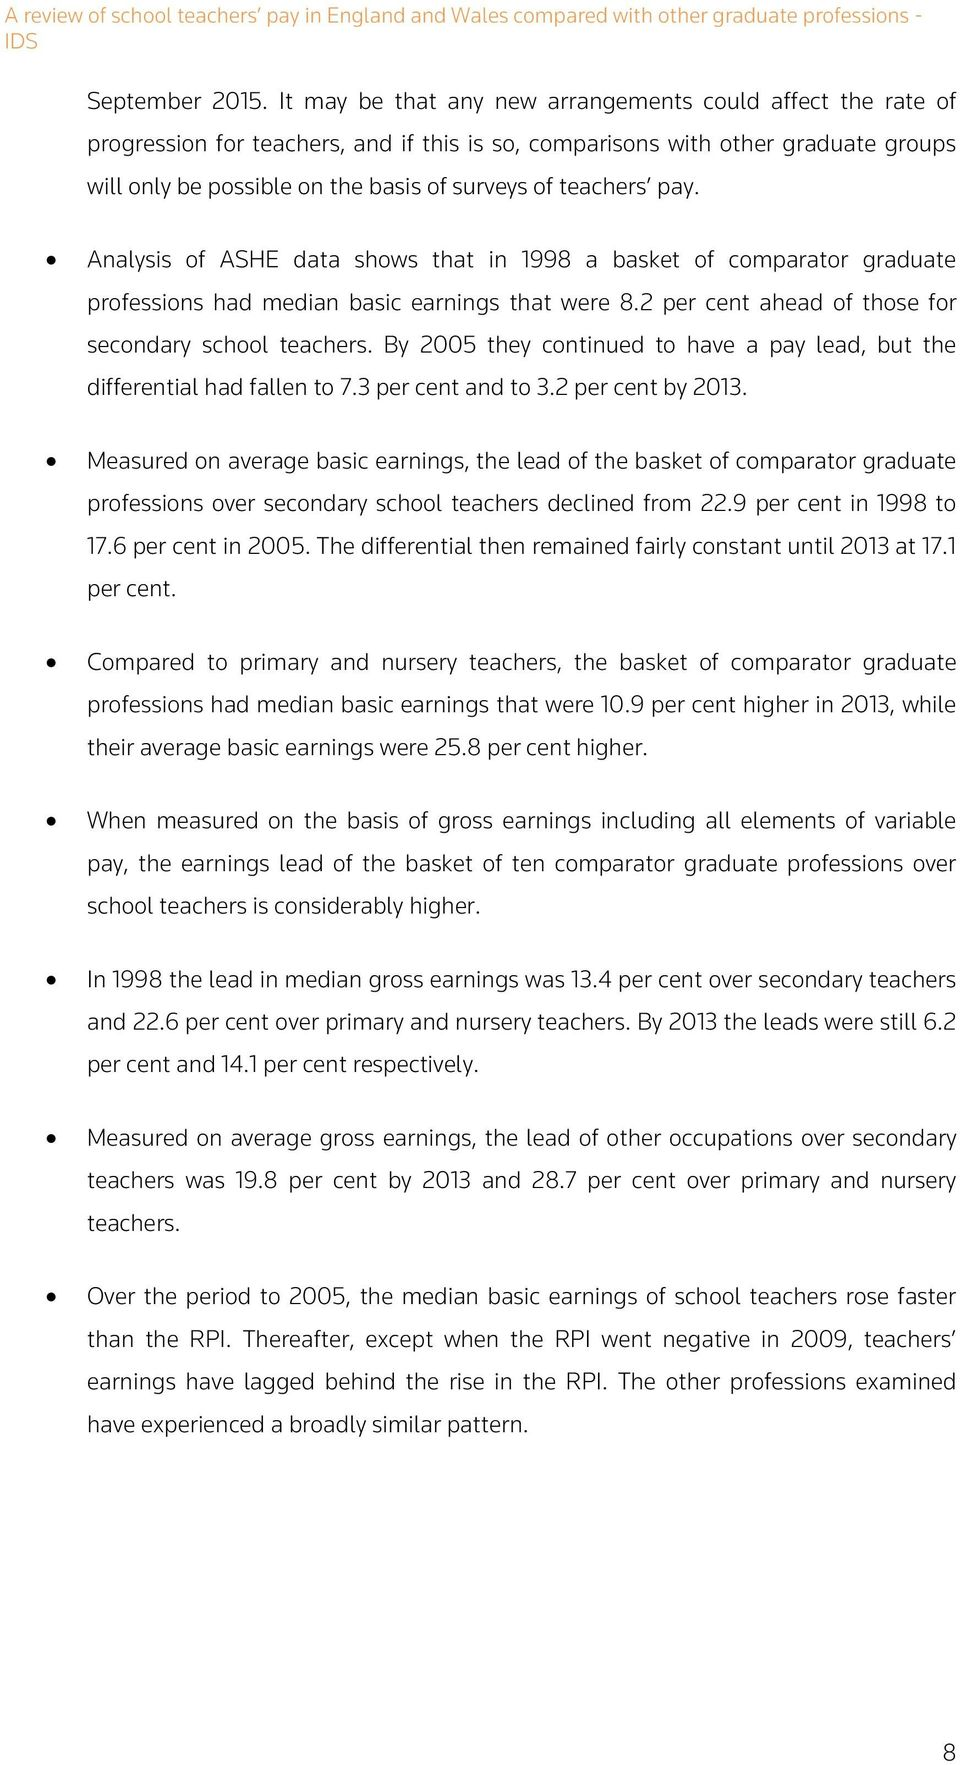 Analysis of ASHE data shows that in 1998 a basket of comparator graduate professions had median basic earnings that were 8.2 per cent ahead of those for secondary school.